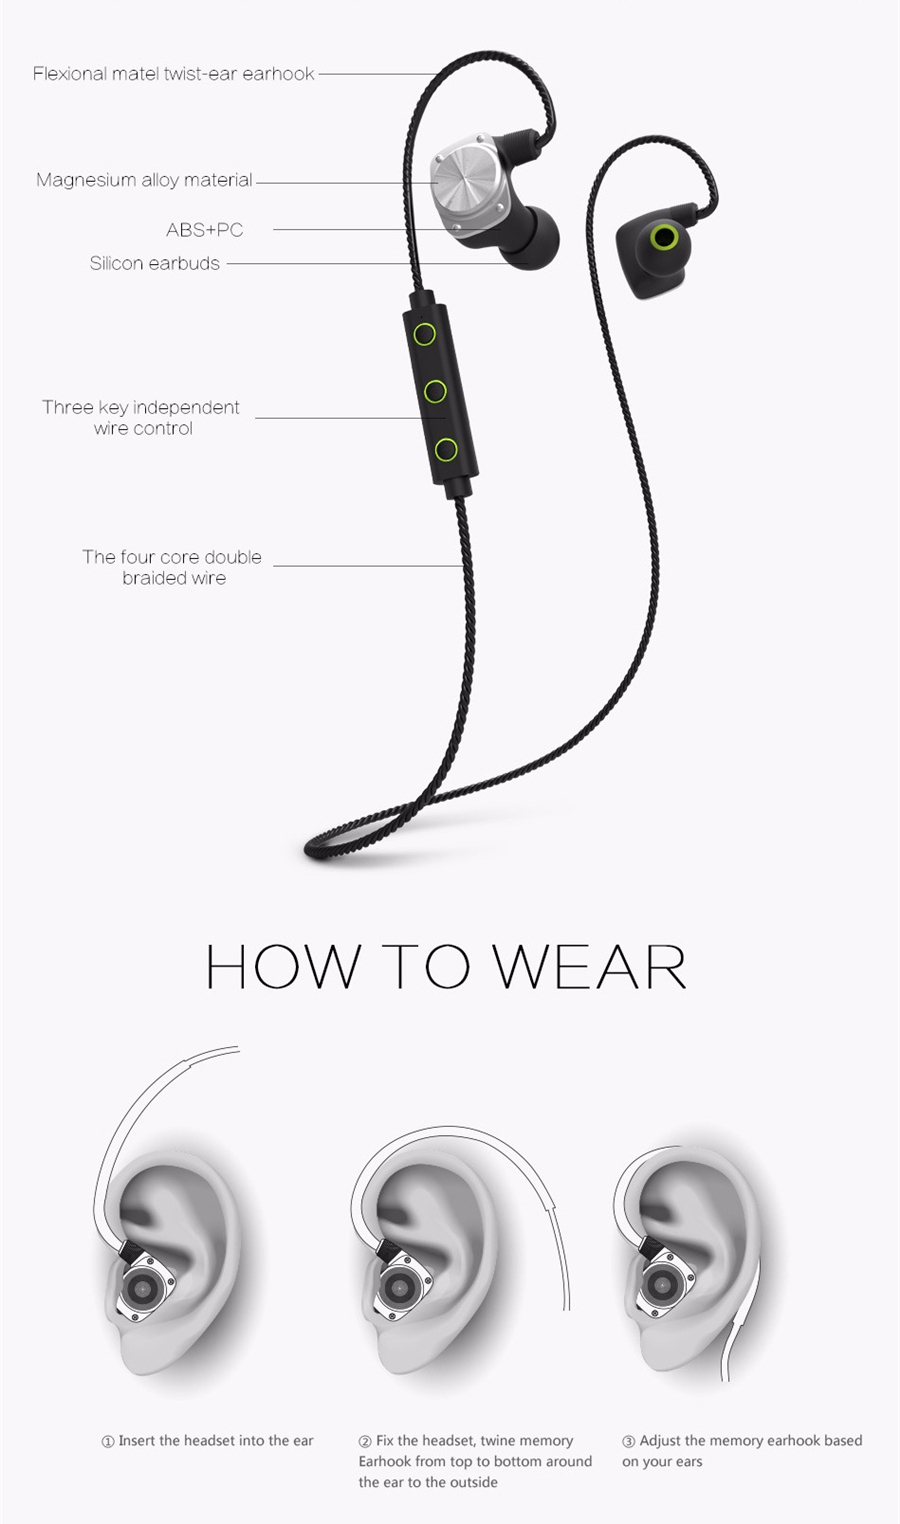 Mifo U6 In-ear Sport IPX6 Waterproof Voice Guide Stereo HiFi V4.2 Bluetooth Earphone With Mic